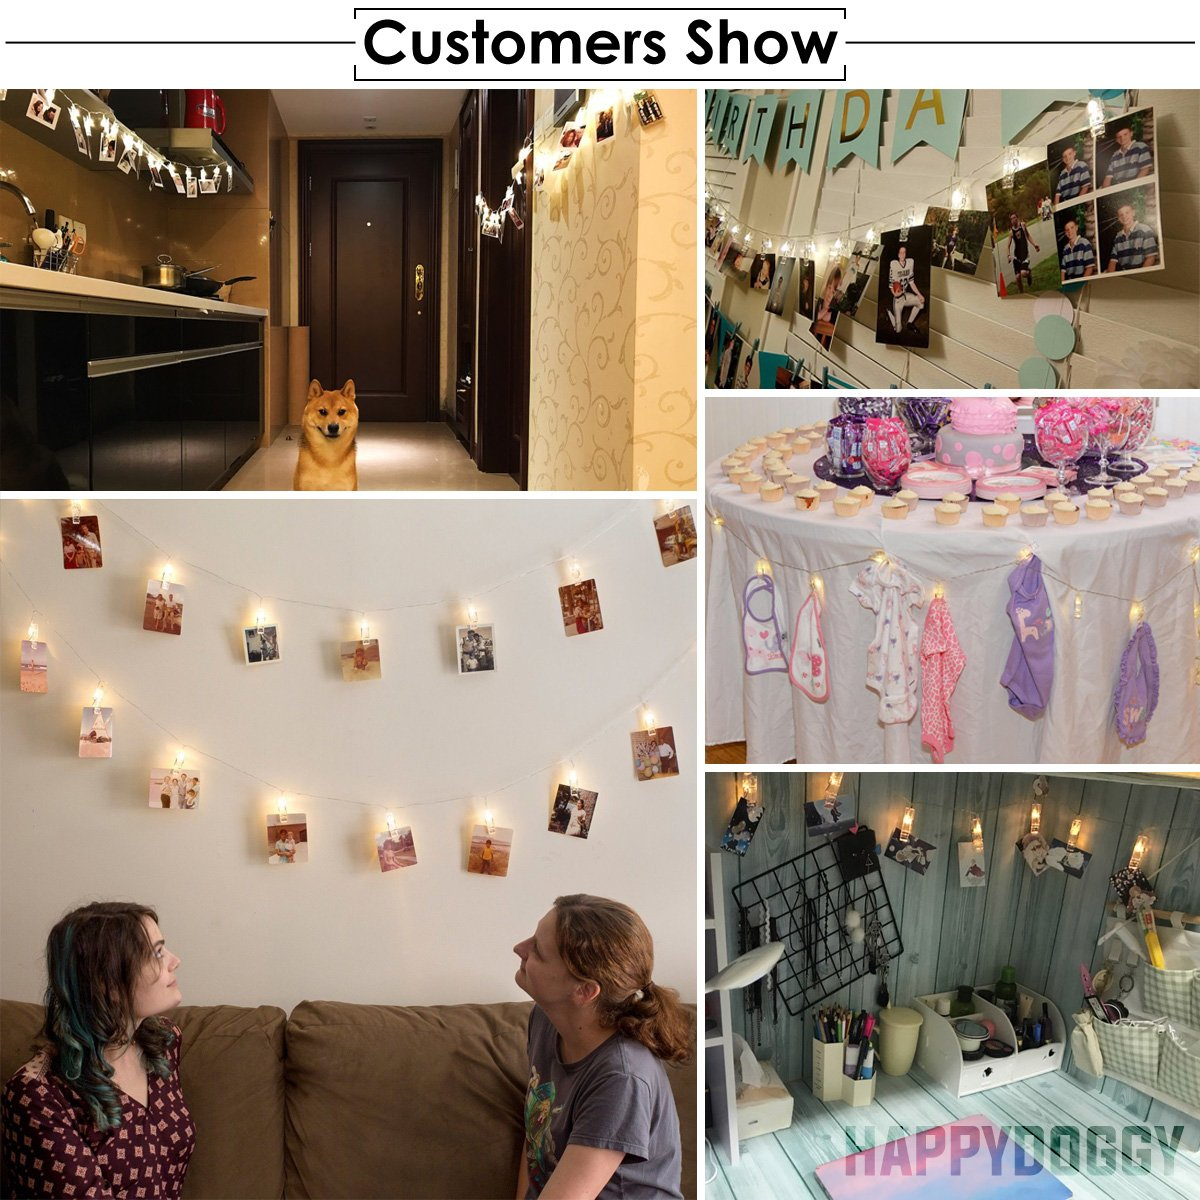 40 LED Photo Clips String Lights – 8 Modes Wall Hanging Clothespin Picture Display Peg Card Holder, Girl Back to School Dorm Room Décor Essential, Birthday Party Halloween Christmas Decorations Gifts by HappyDoggy (Image #7)